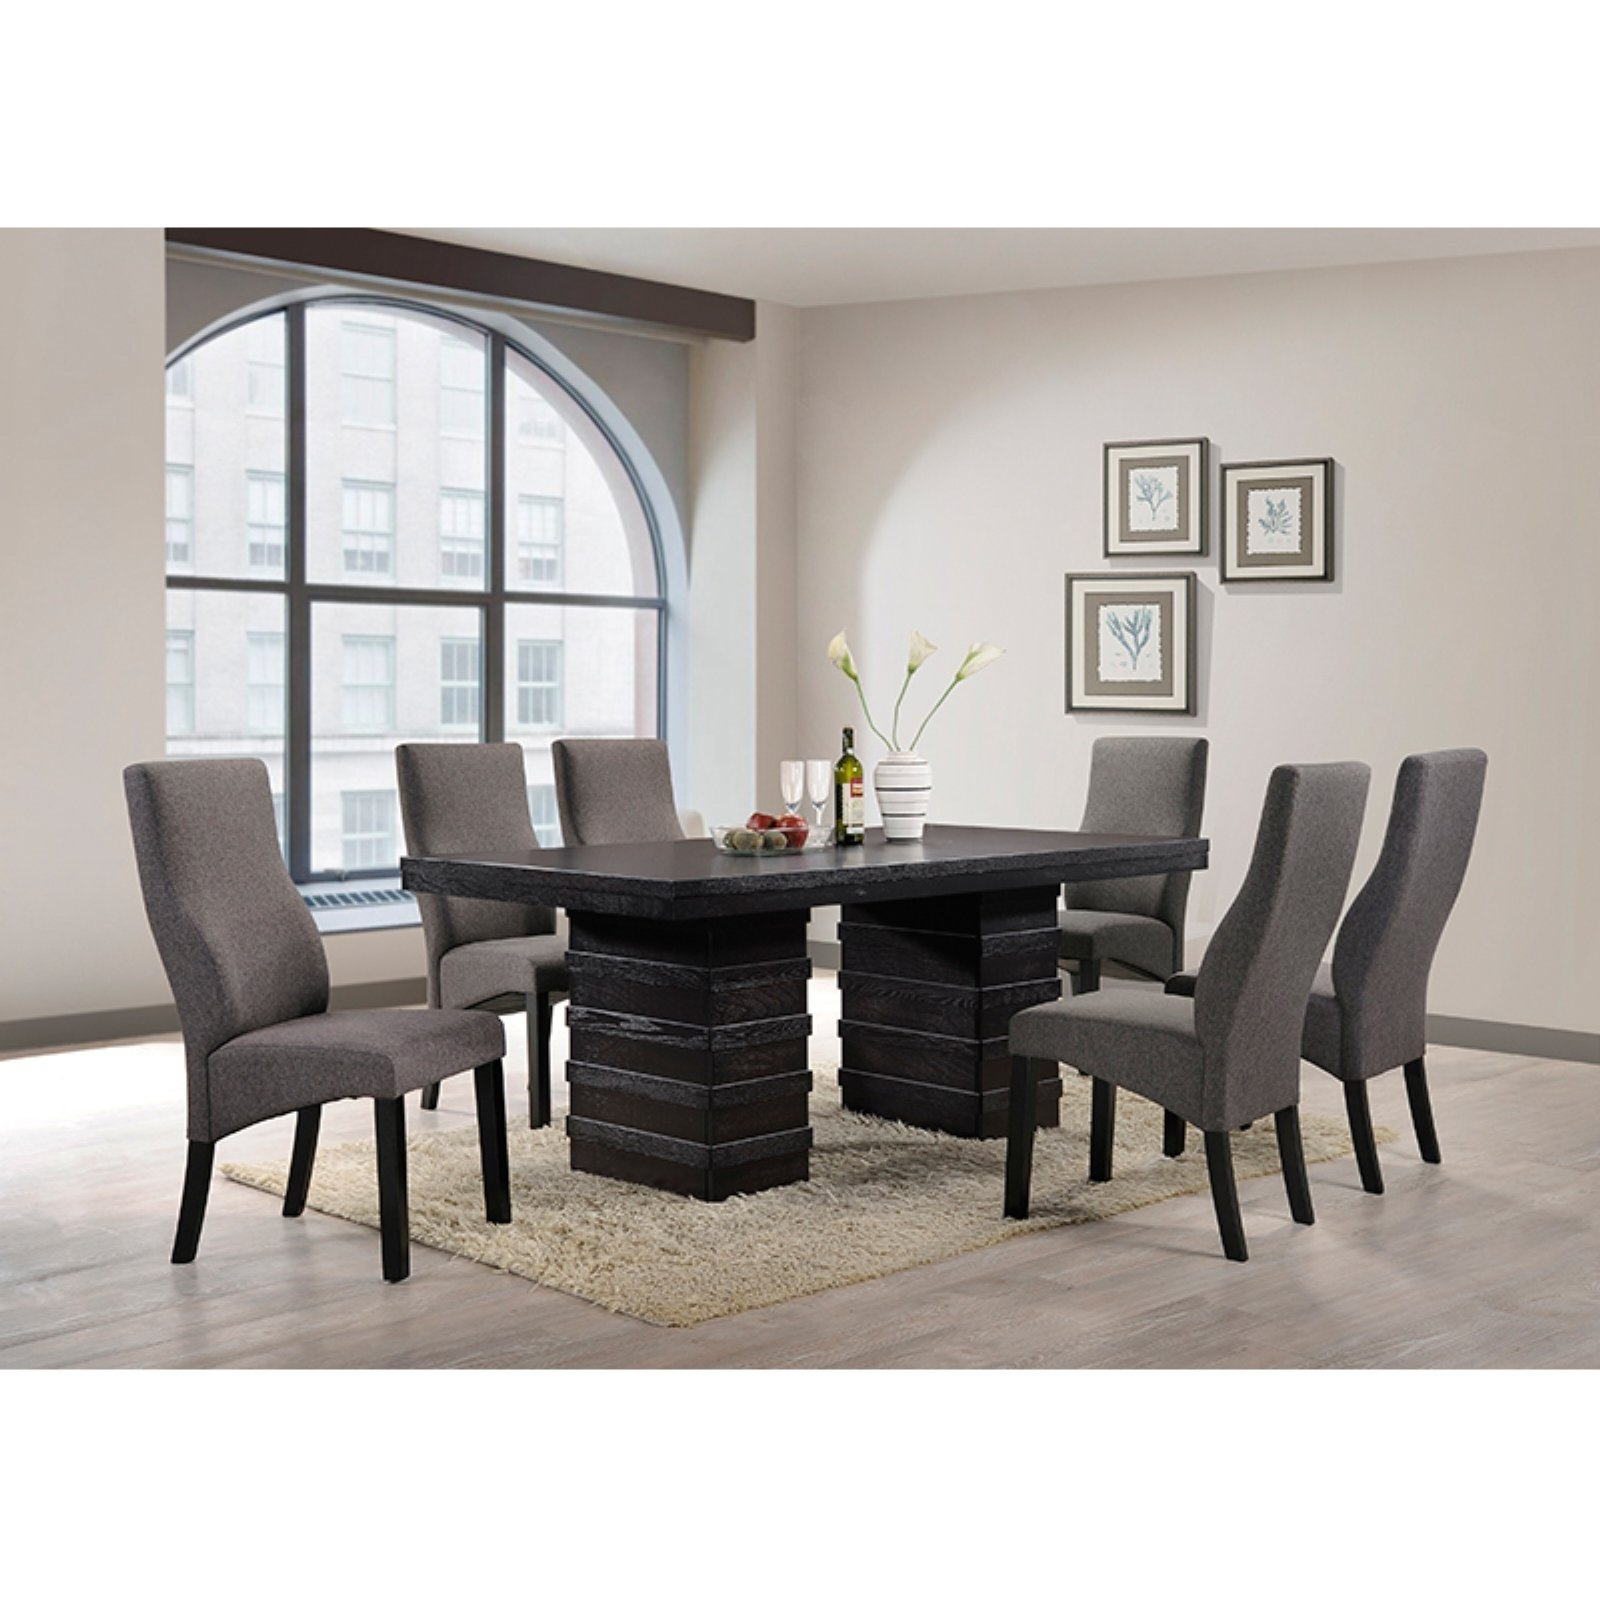 Norwood 6 Piece Rectangle Extension Dining Sets Inside Best And Newest K & B Furniture Norwood Dining Table – Walmart (View 4 of 25)